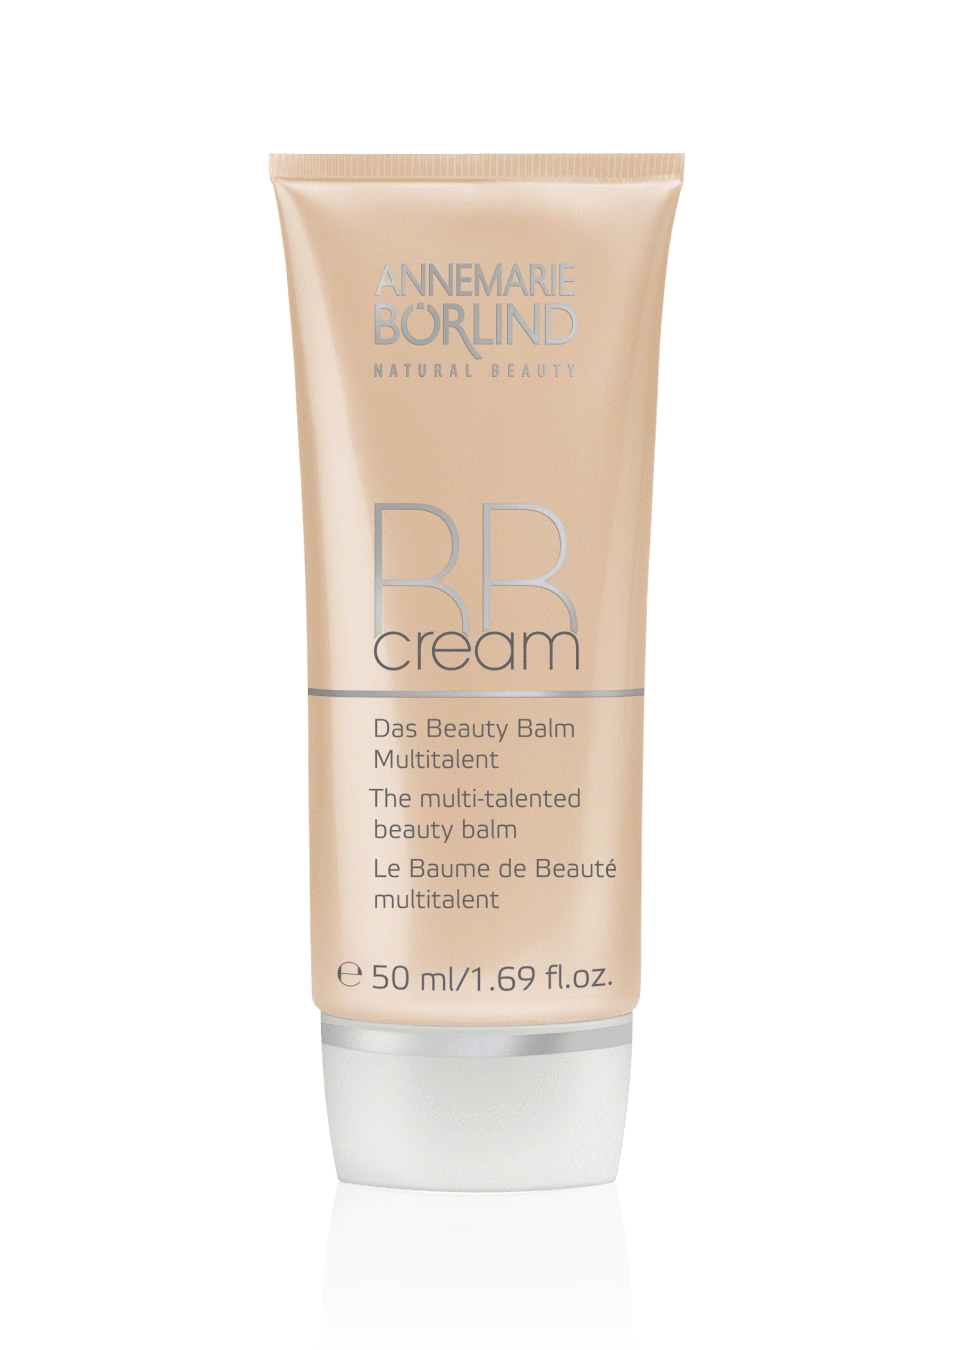 Personal Care - Annemarie Borlind BB Cream - Light, 50mL